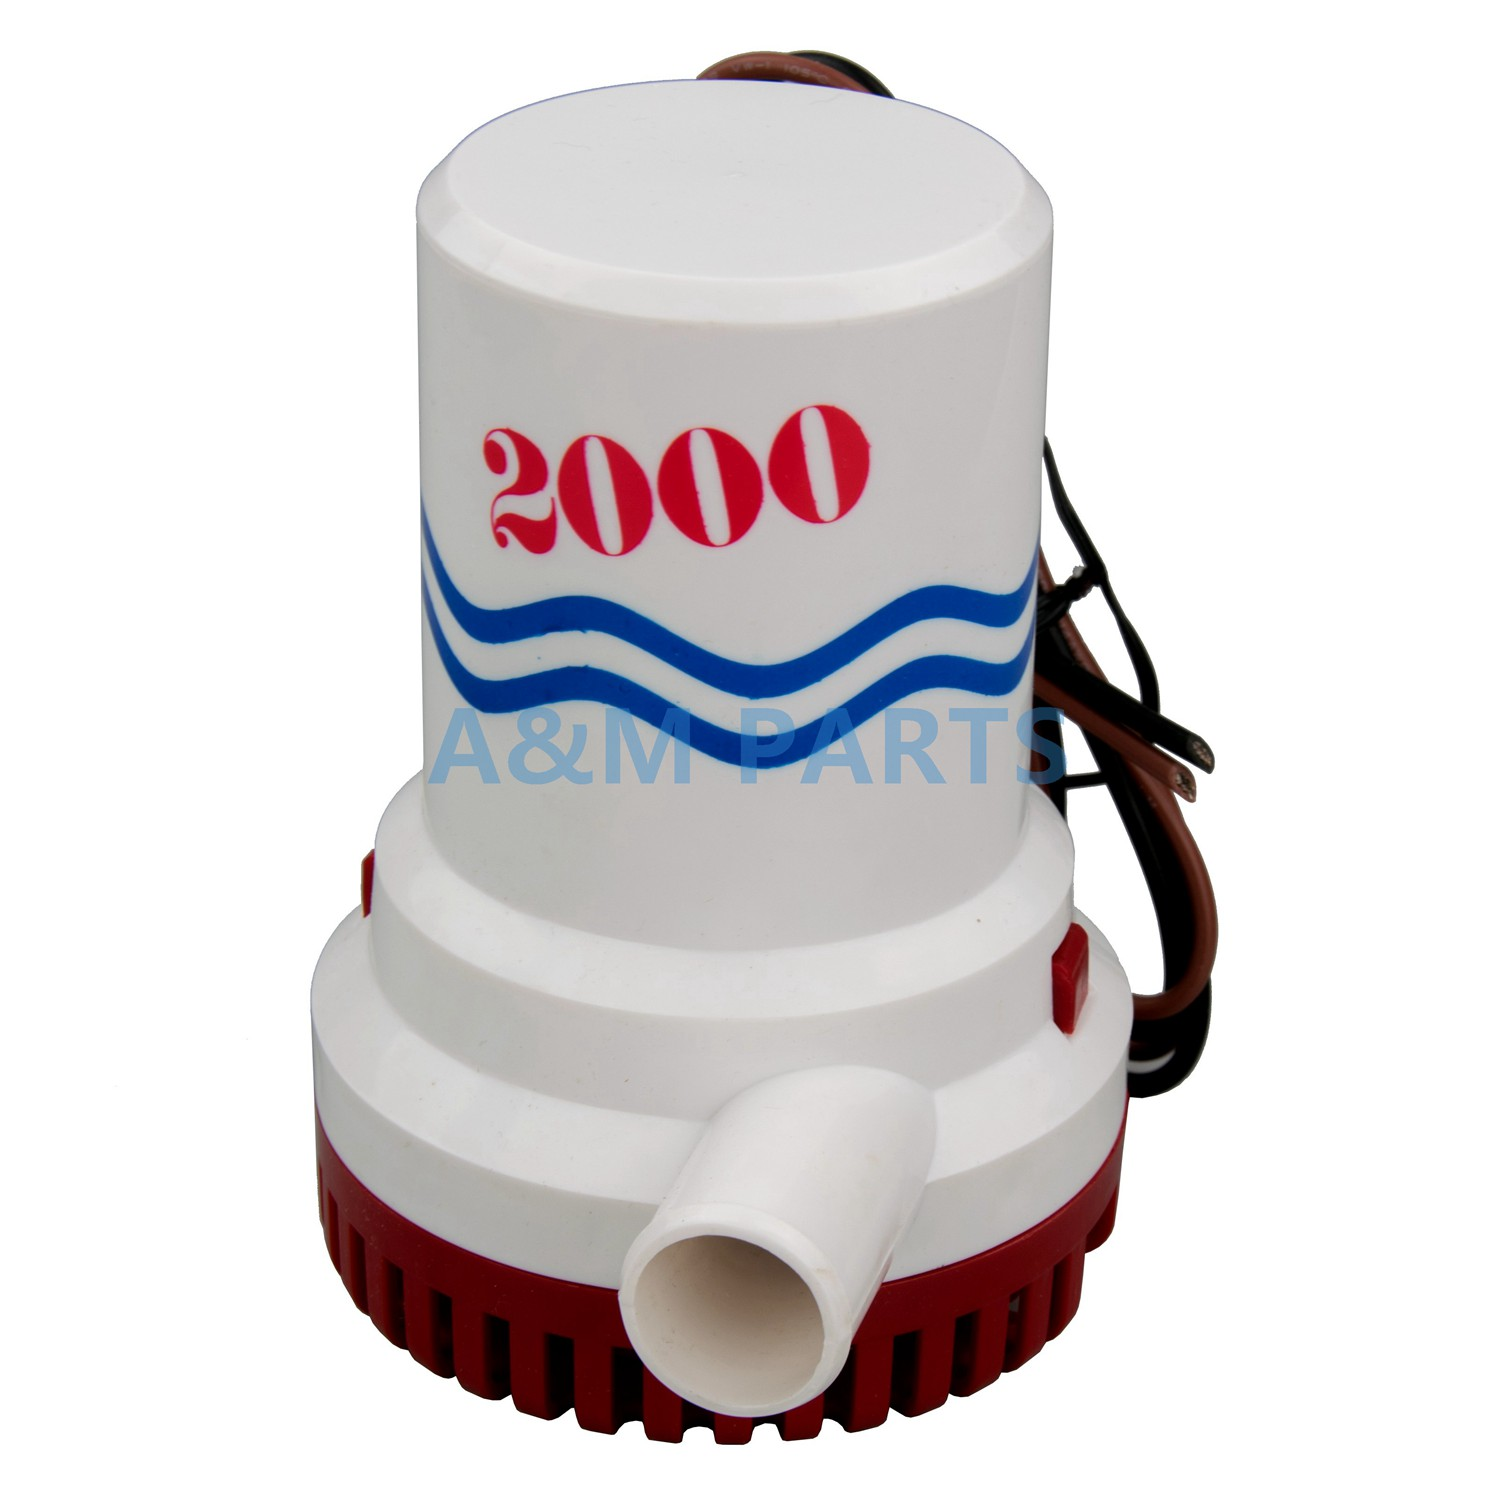 12V 2000GPH Boat Bilge Pump Marine Water Pump DC Submersible Pump sailflo new mini bilge pump marine water aspirator fountain submersible yacht boat electric marine bilge pump